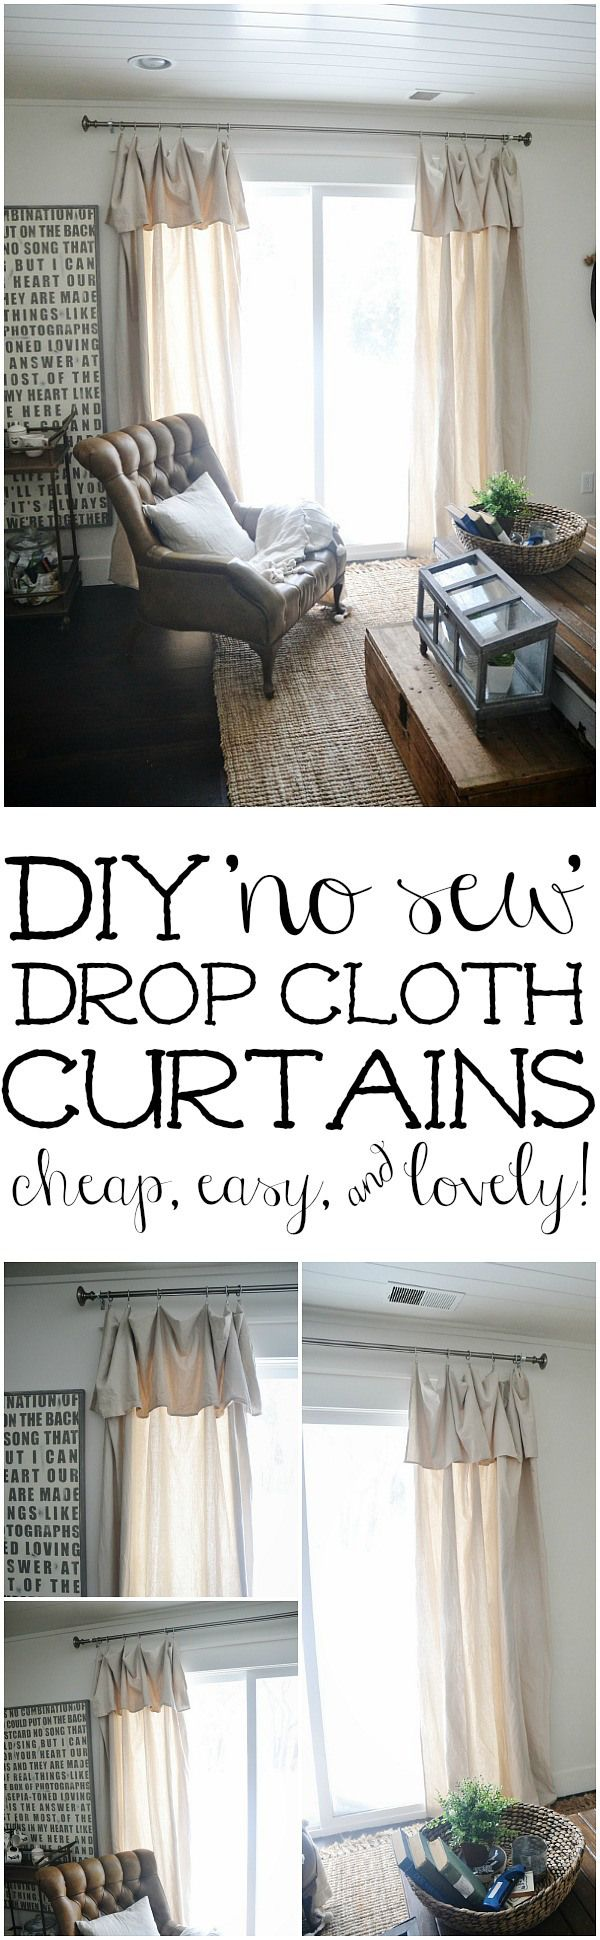 New Curtains Amp Some Diy No Sew Curtains Drop Cloth